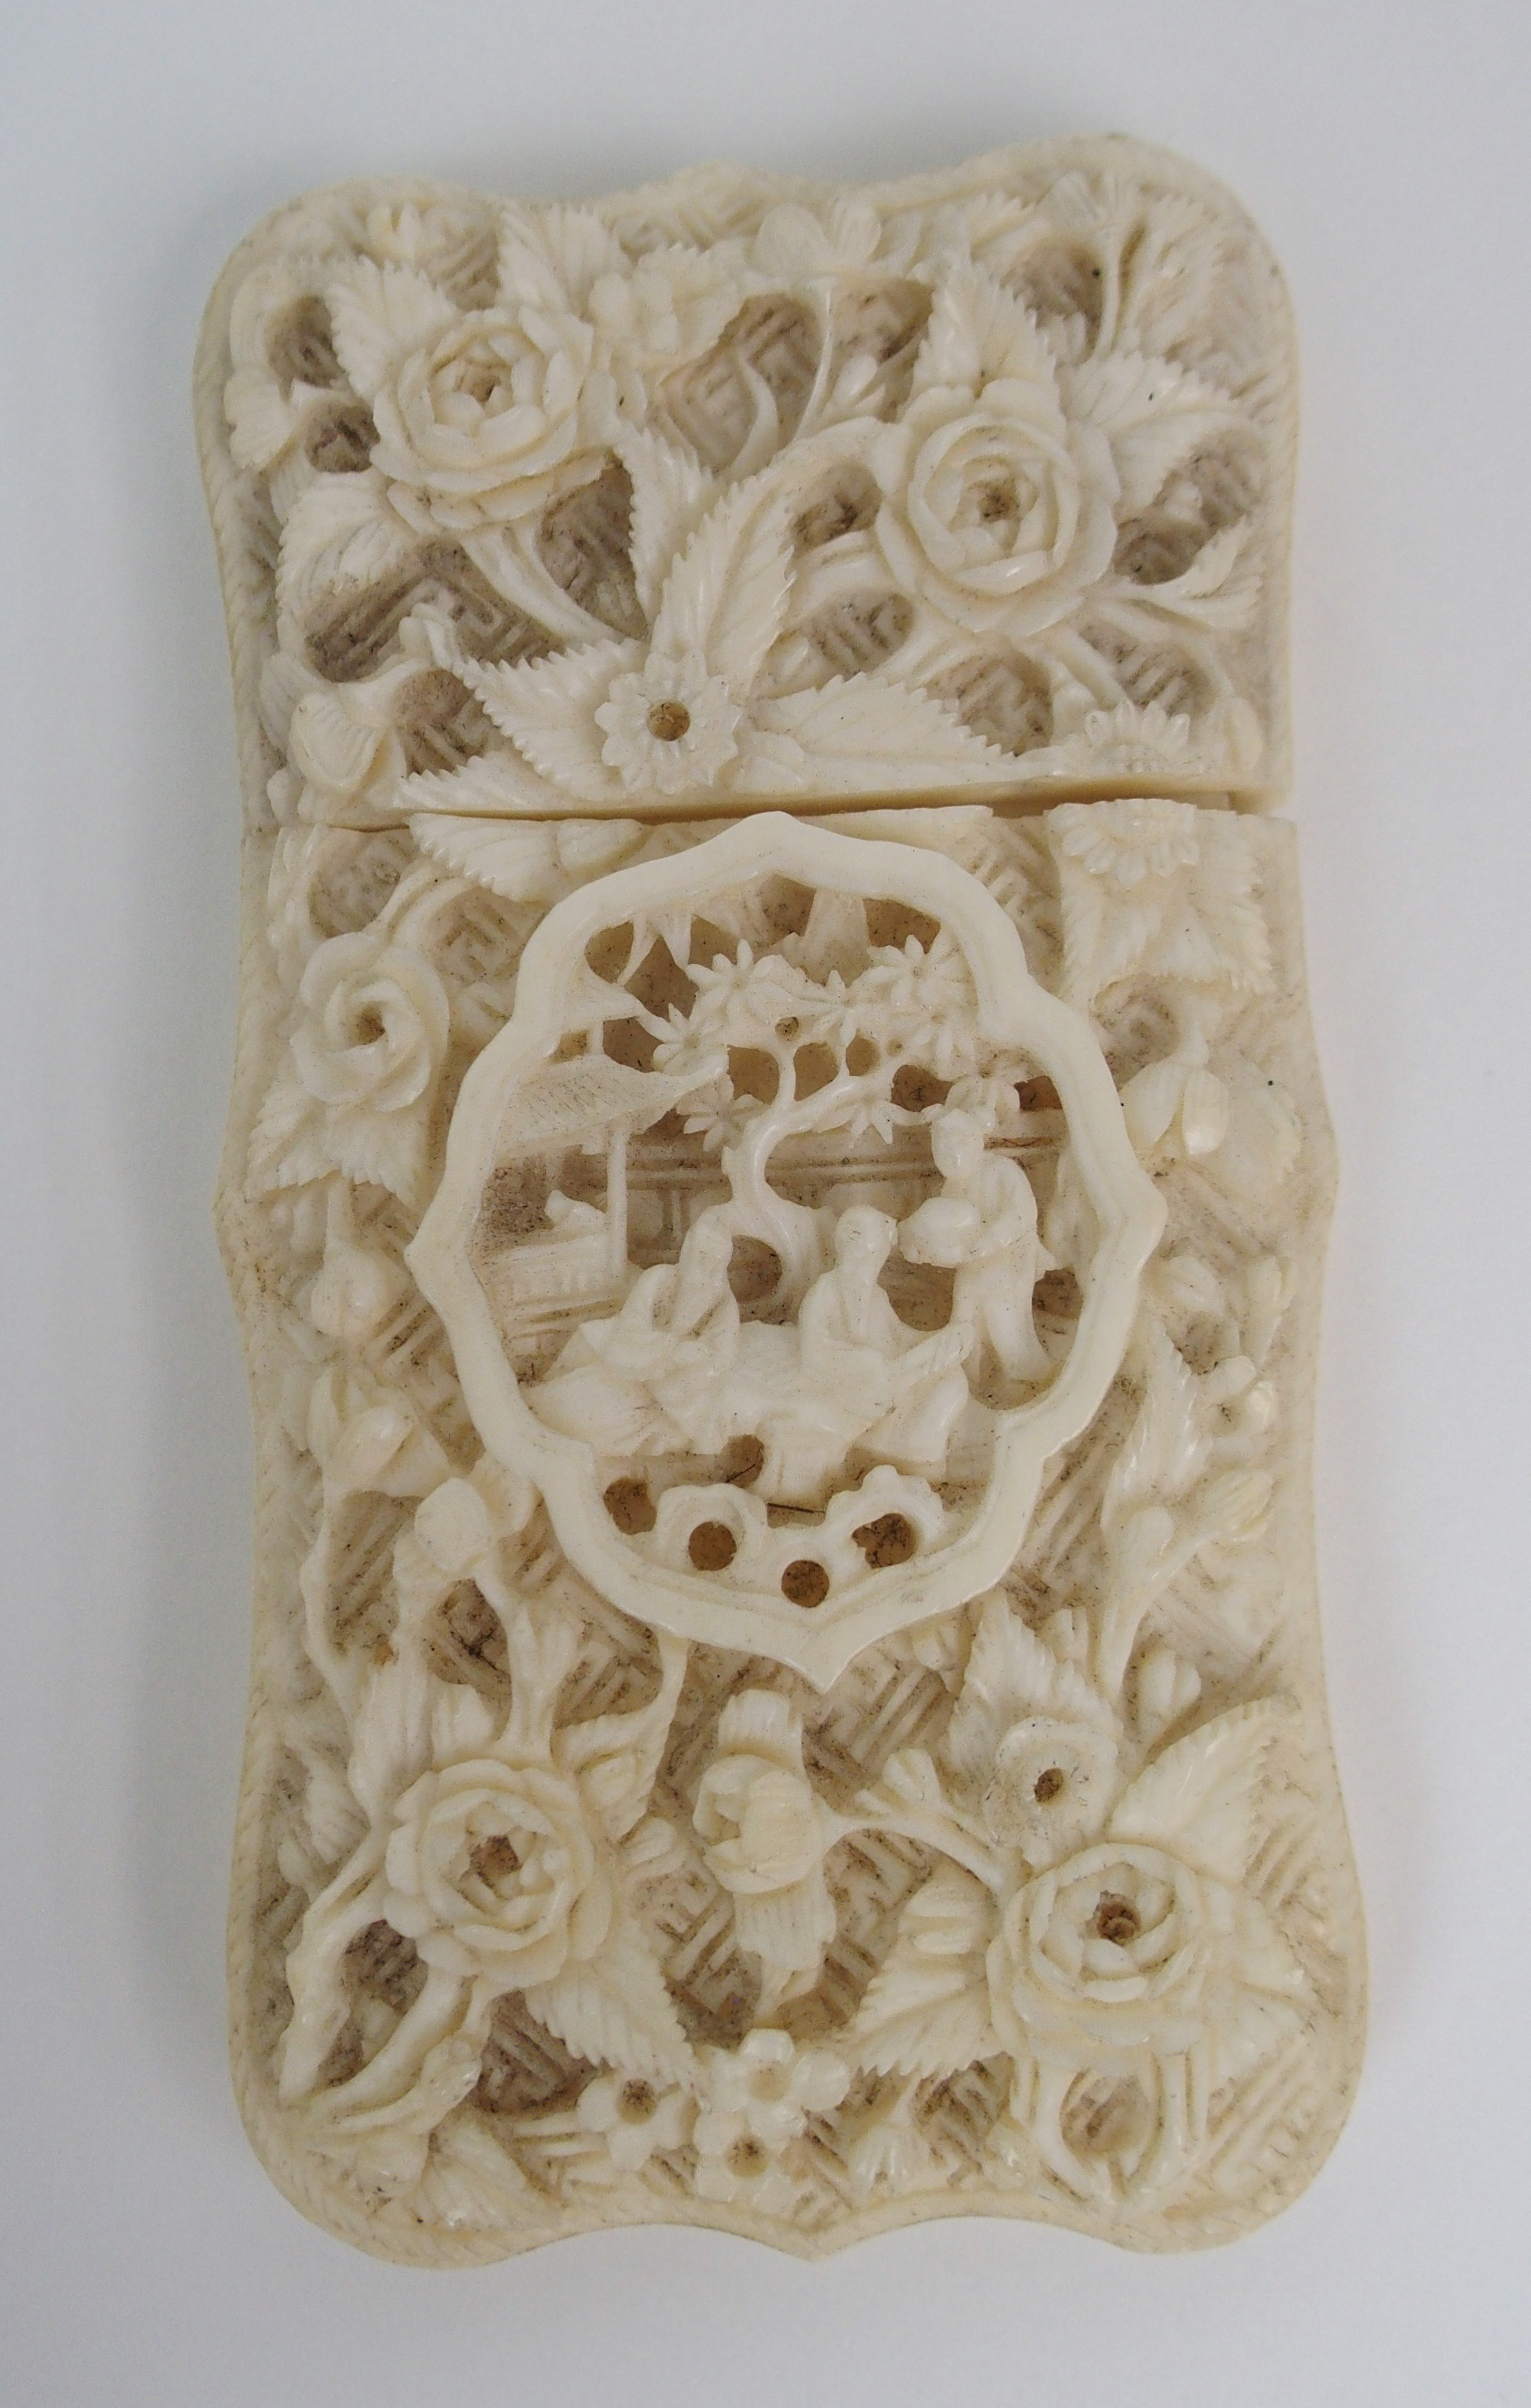 Lot 26 - A CANTONESE IVORY CARD CASE carved allover with a vignette of figures amongst foliage, 8.5cm high, a